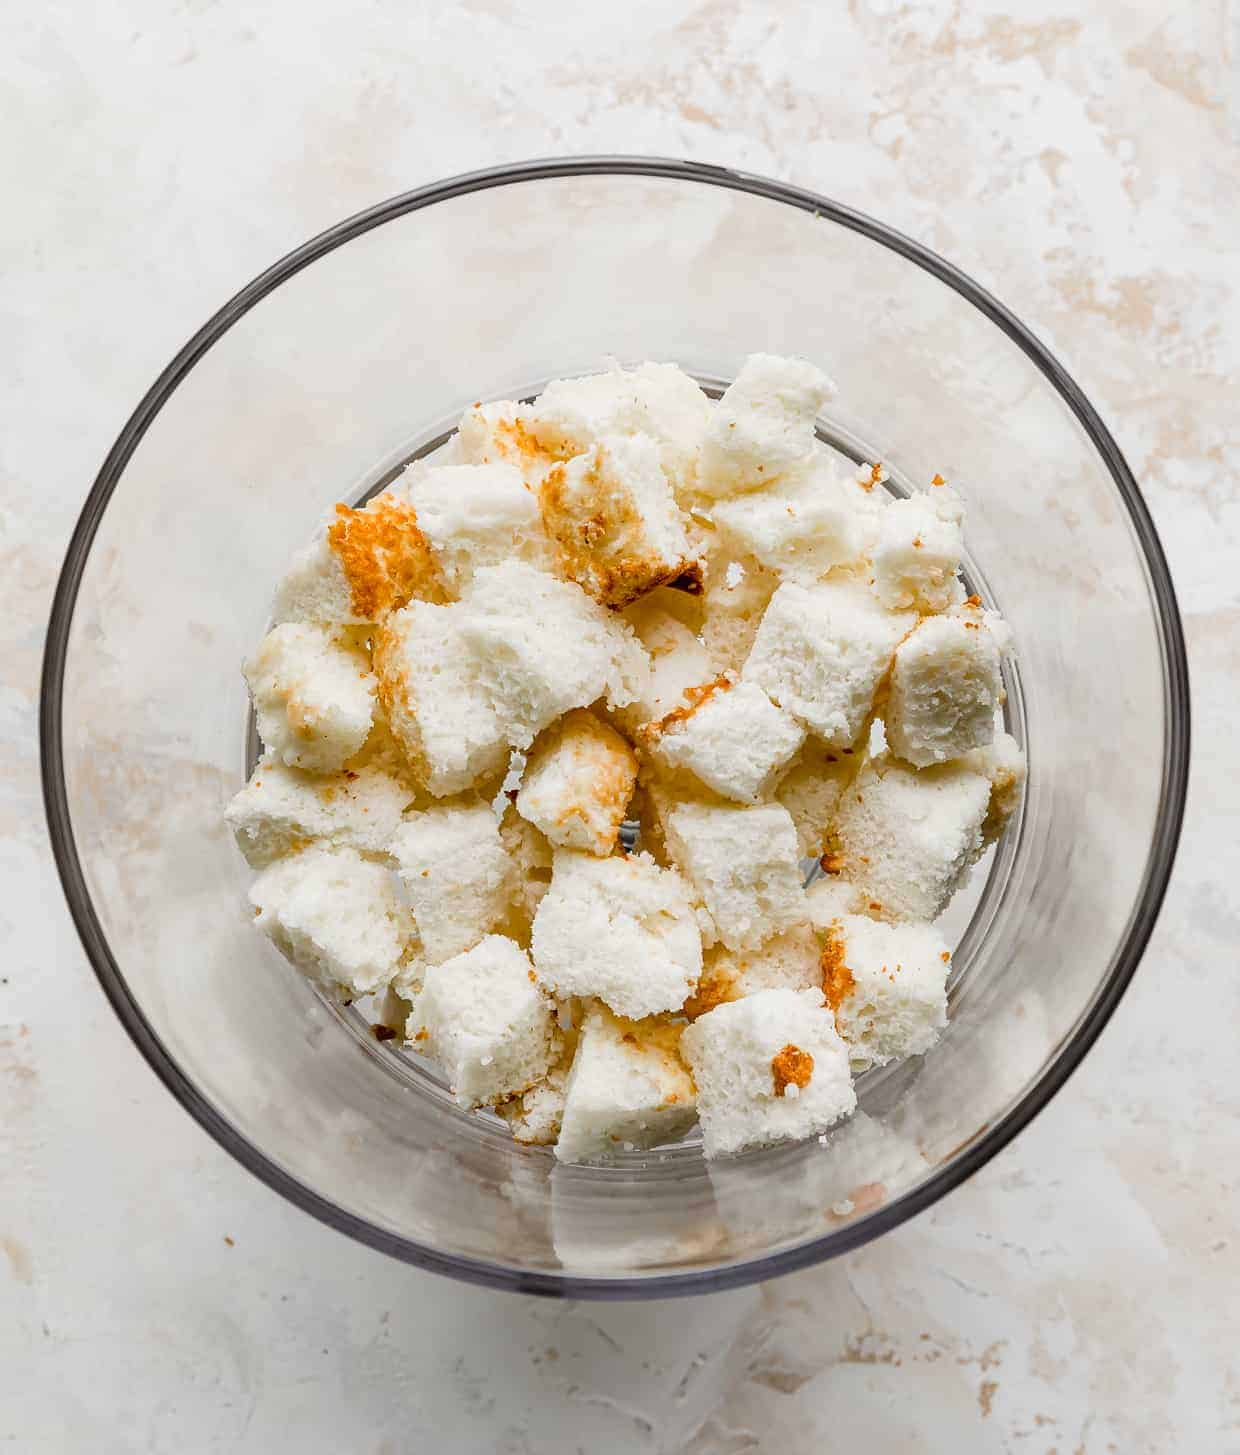 Cubed angel food cake in a trifle dish.